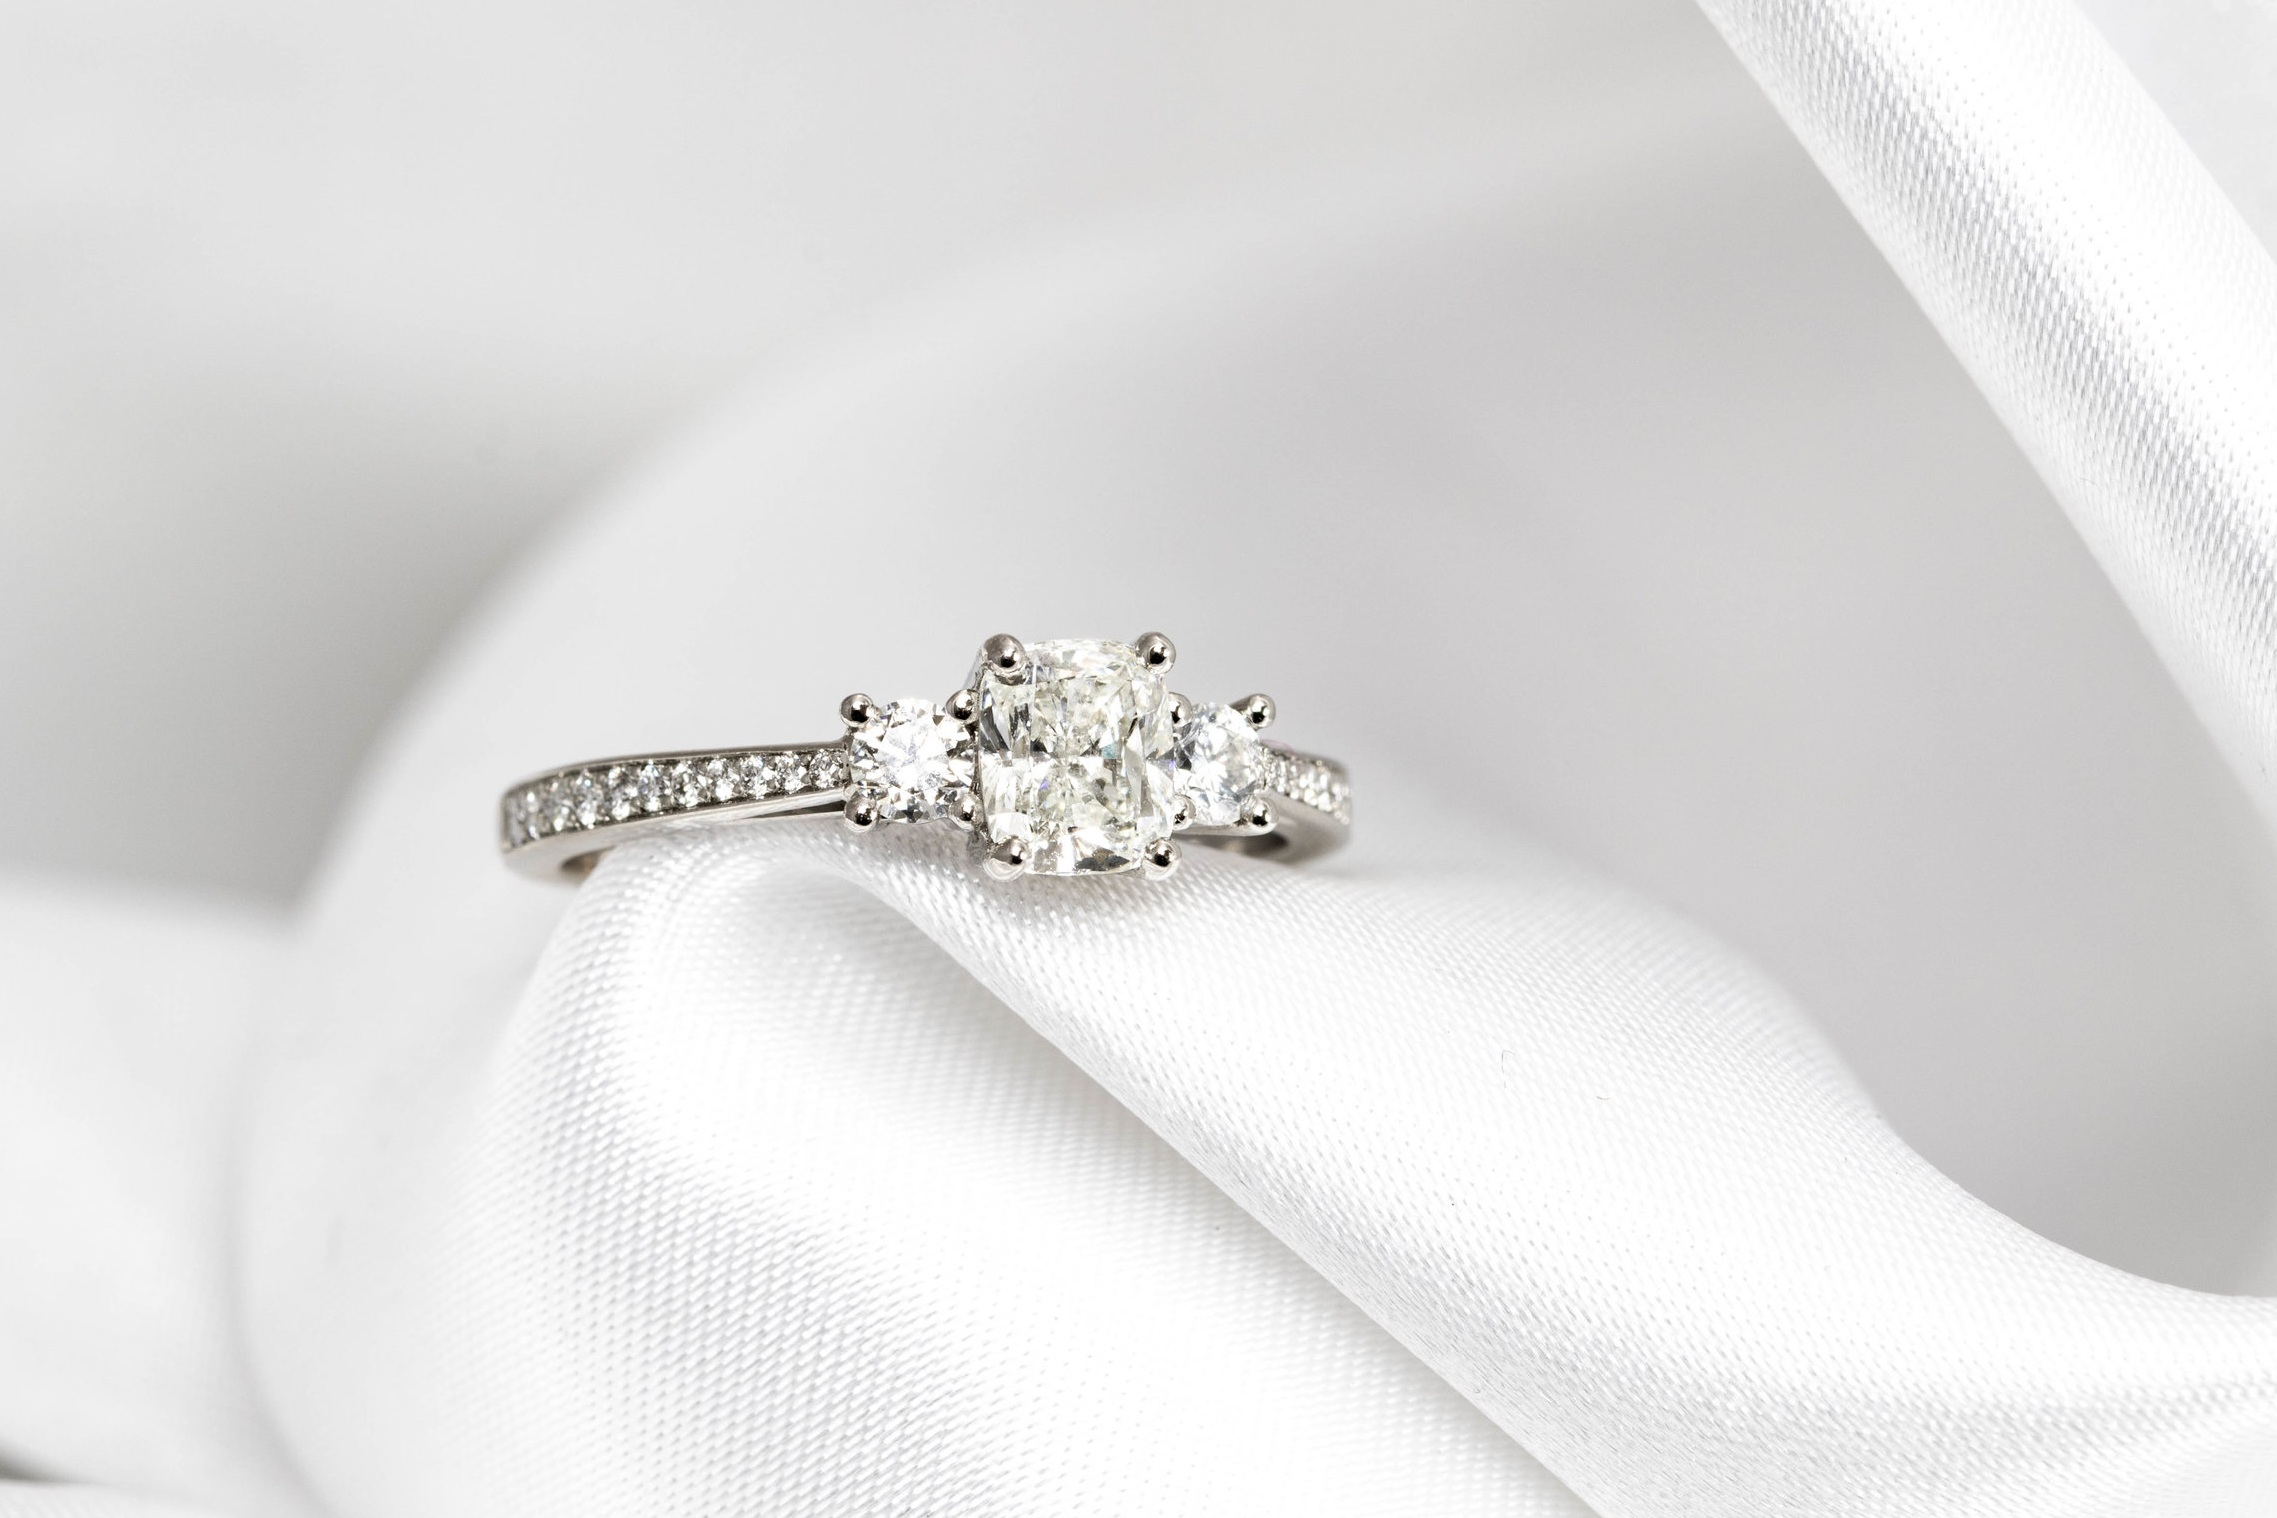 Platinum mounted 0.70ct cushion cut and round brilliant cut diamond 3 stone ring with grain set diamond shoulders. Made in Chichester, England.